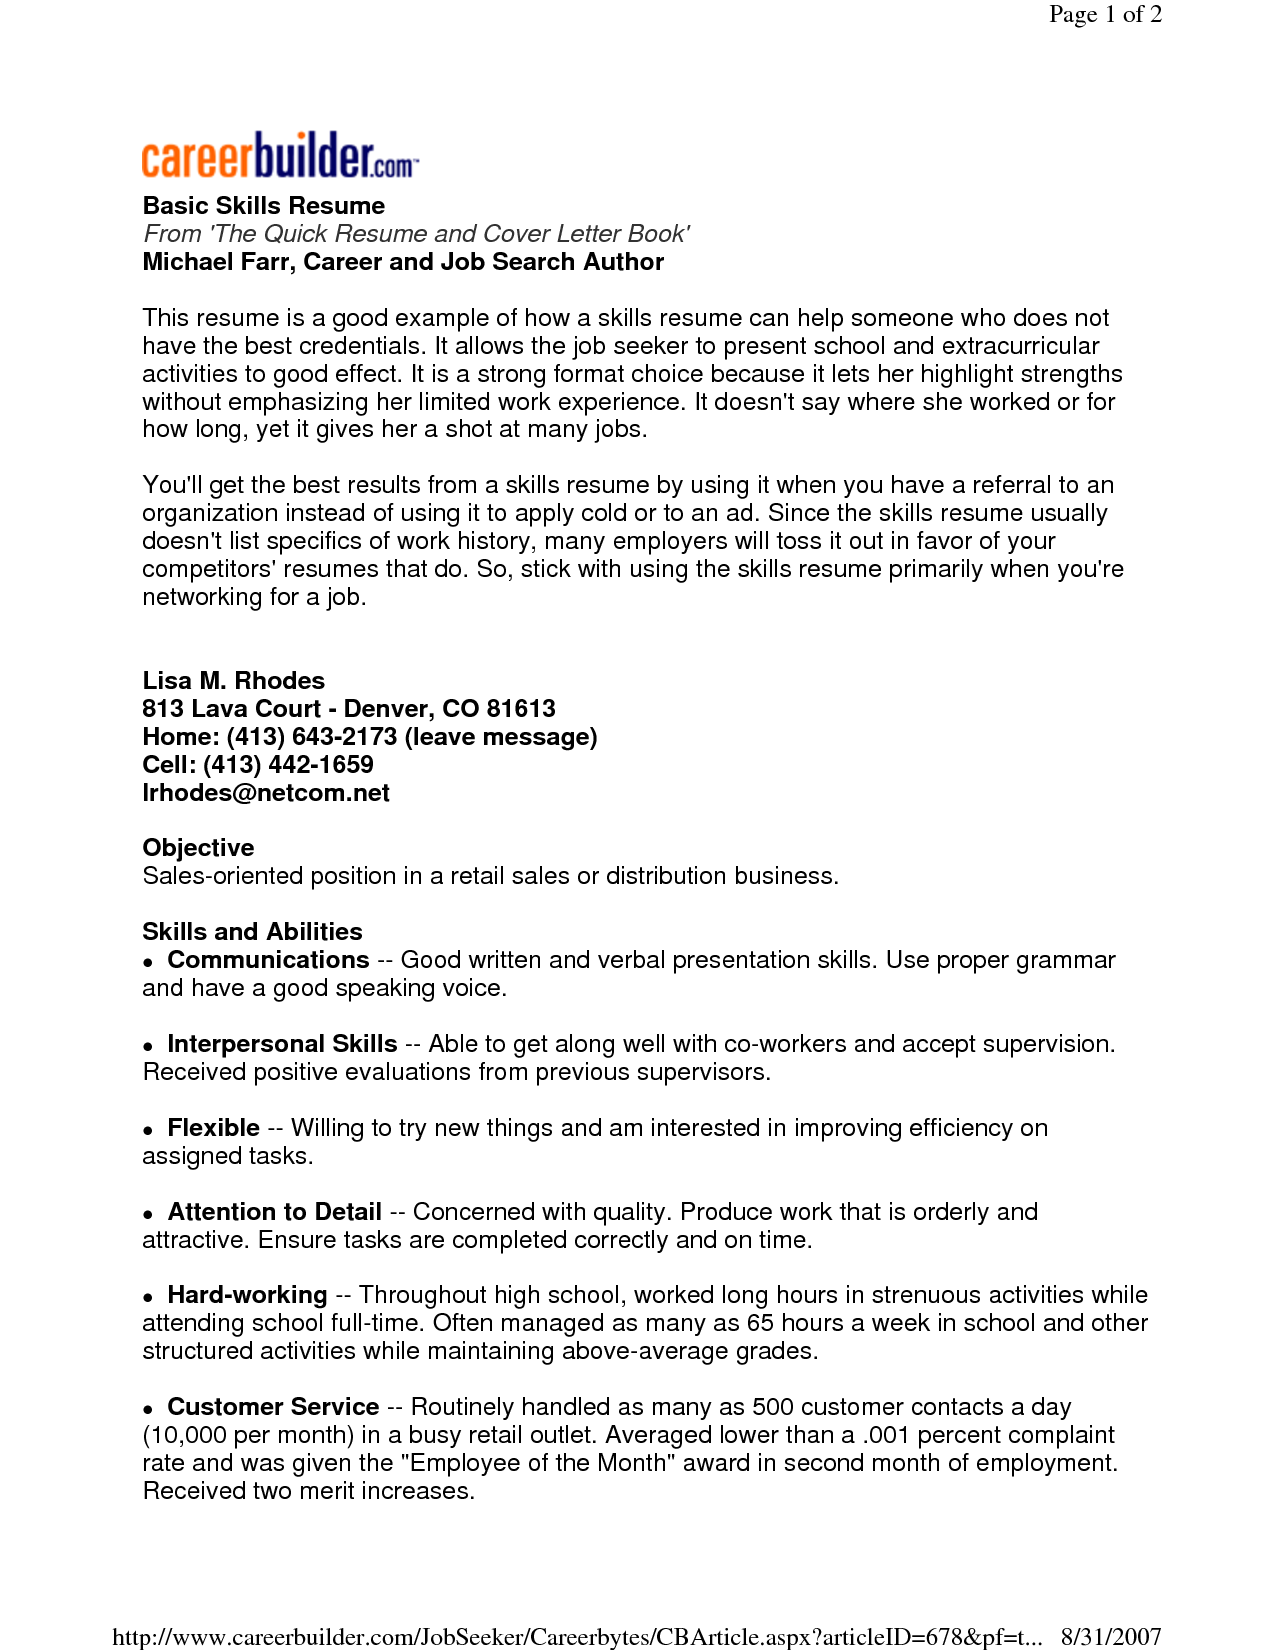 Find Resumes Find Here The Sample Resume That Best Fits Your Profile In Order To